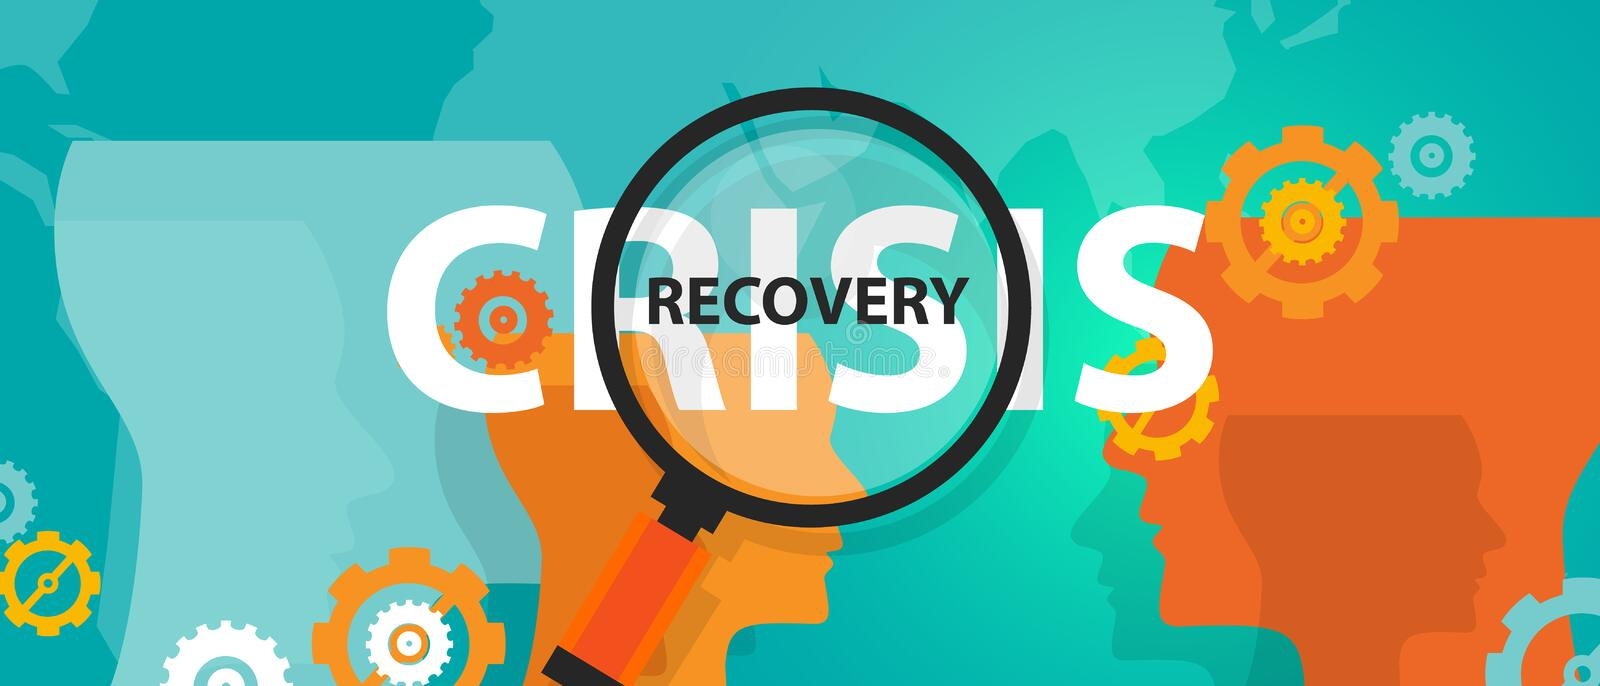 Crisis and recovery from depression concept of thinking analysis mindset thoughts stock illustration